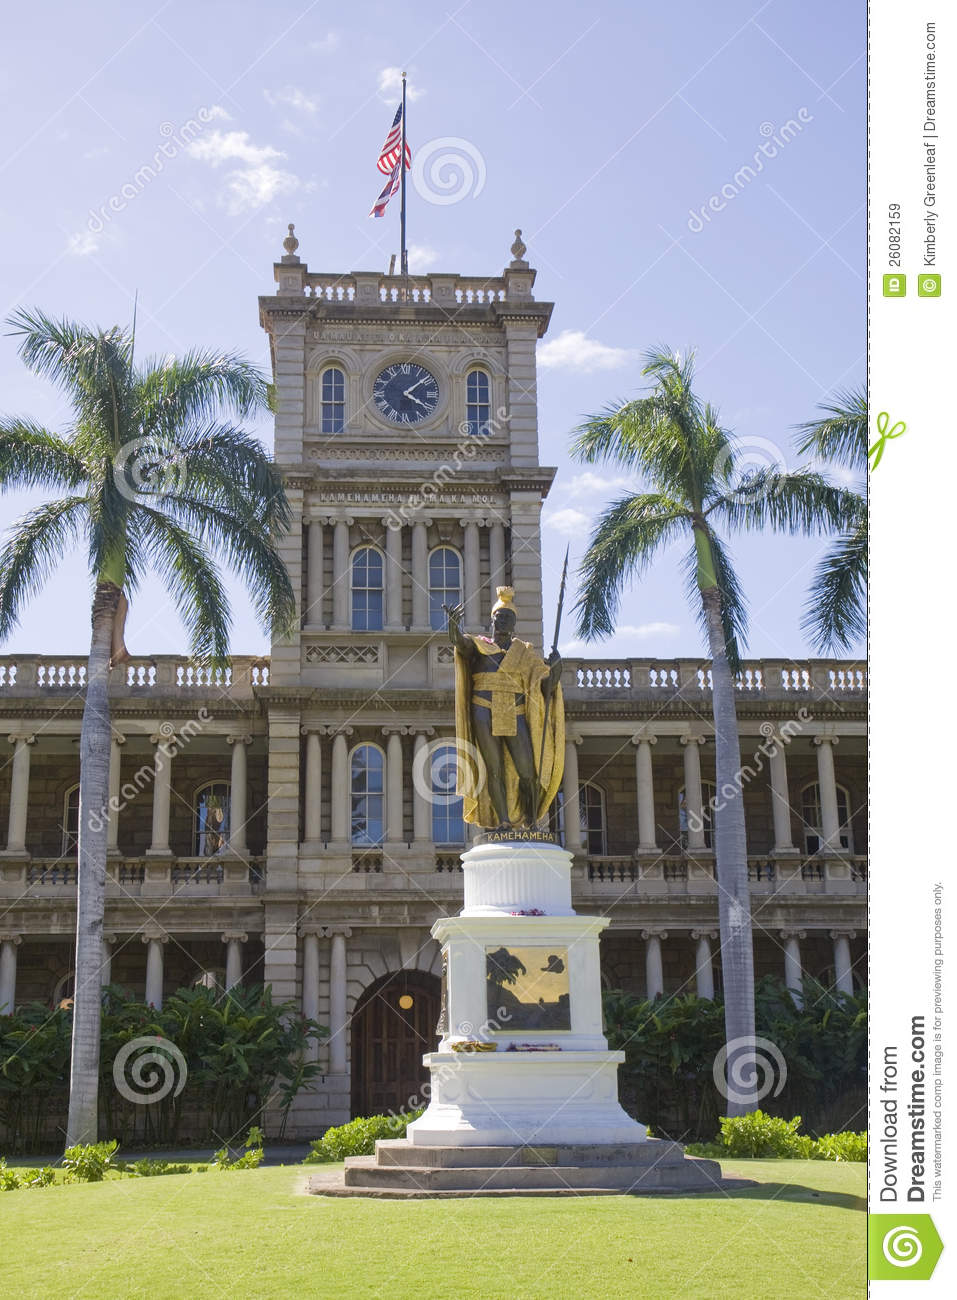 State Capital Building, Honolulu, Hawaii Royalty Free Stock Images - Image: 26082159